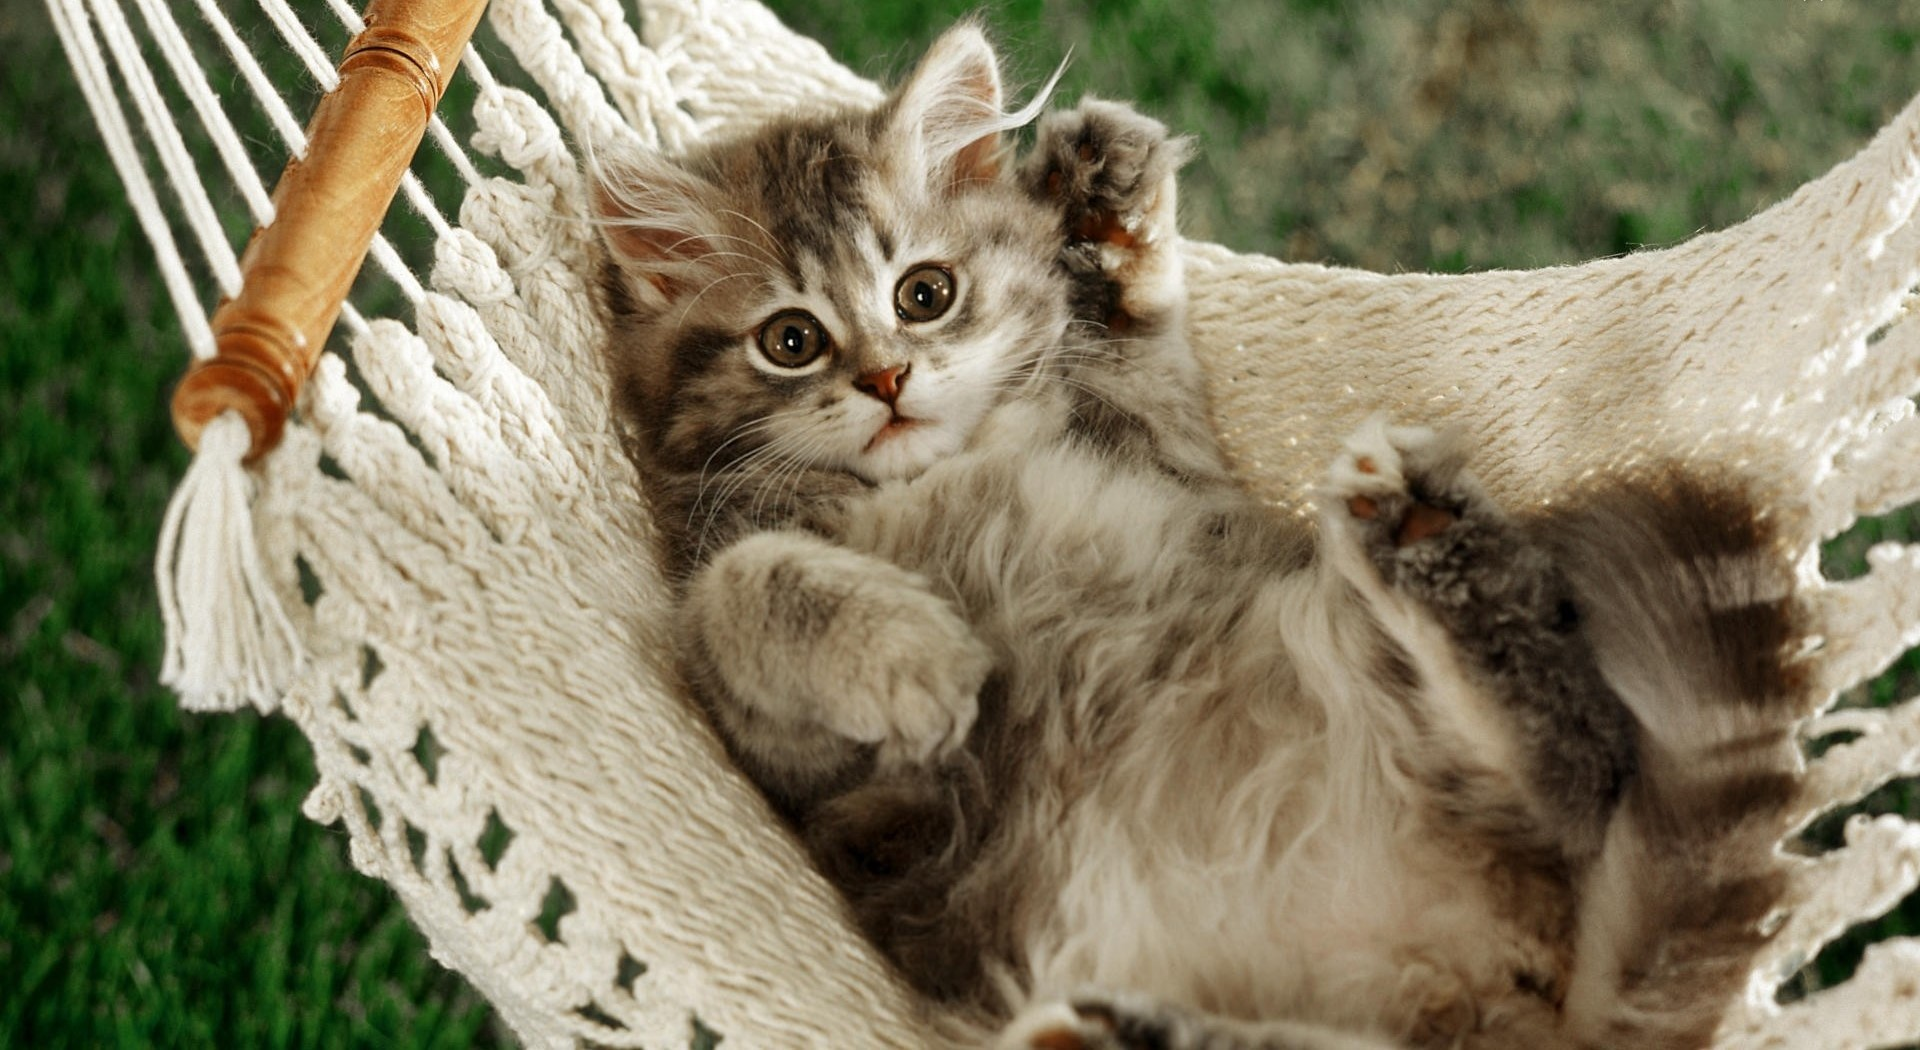 Funny Cat In A Hammock Wallpapers And Images